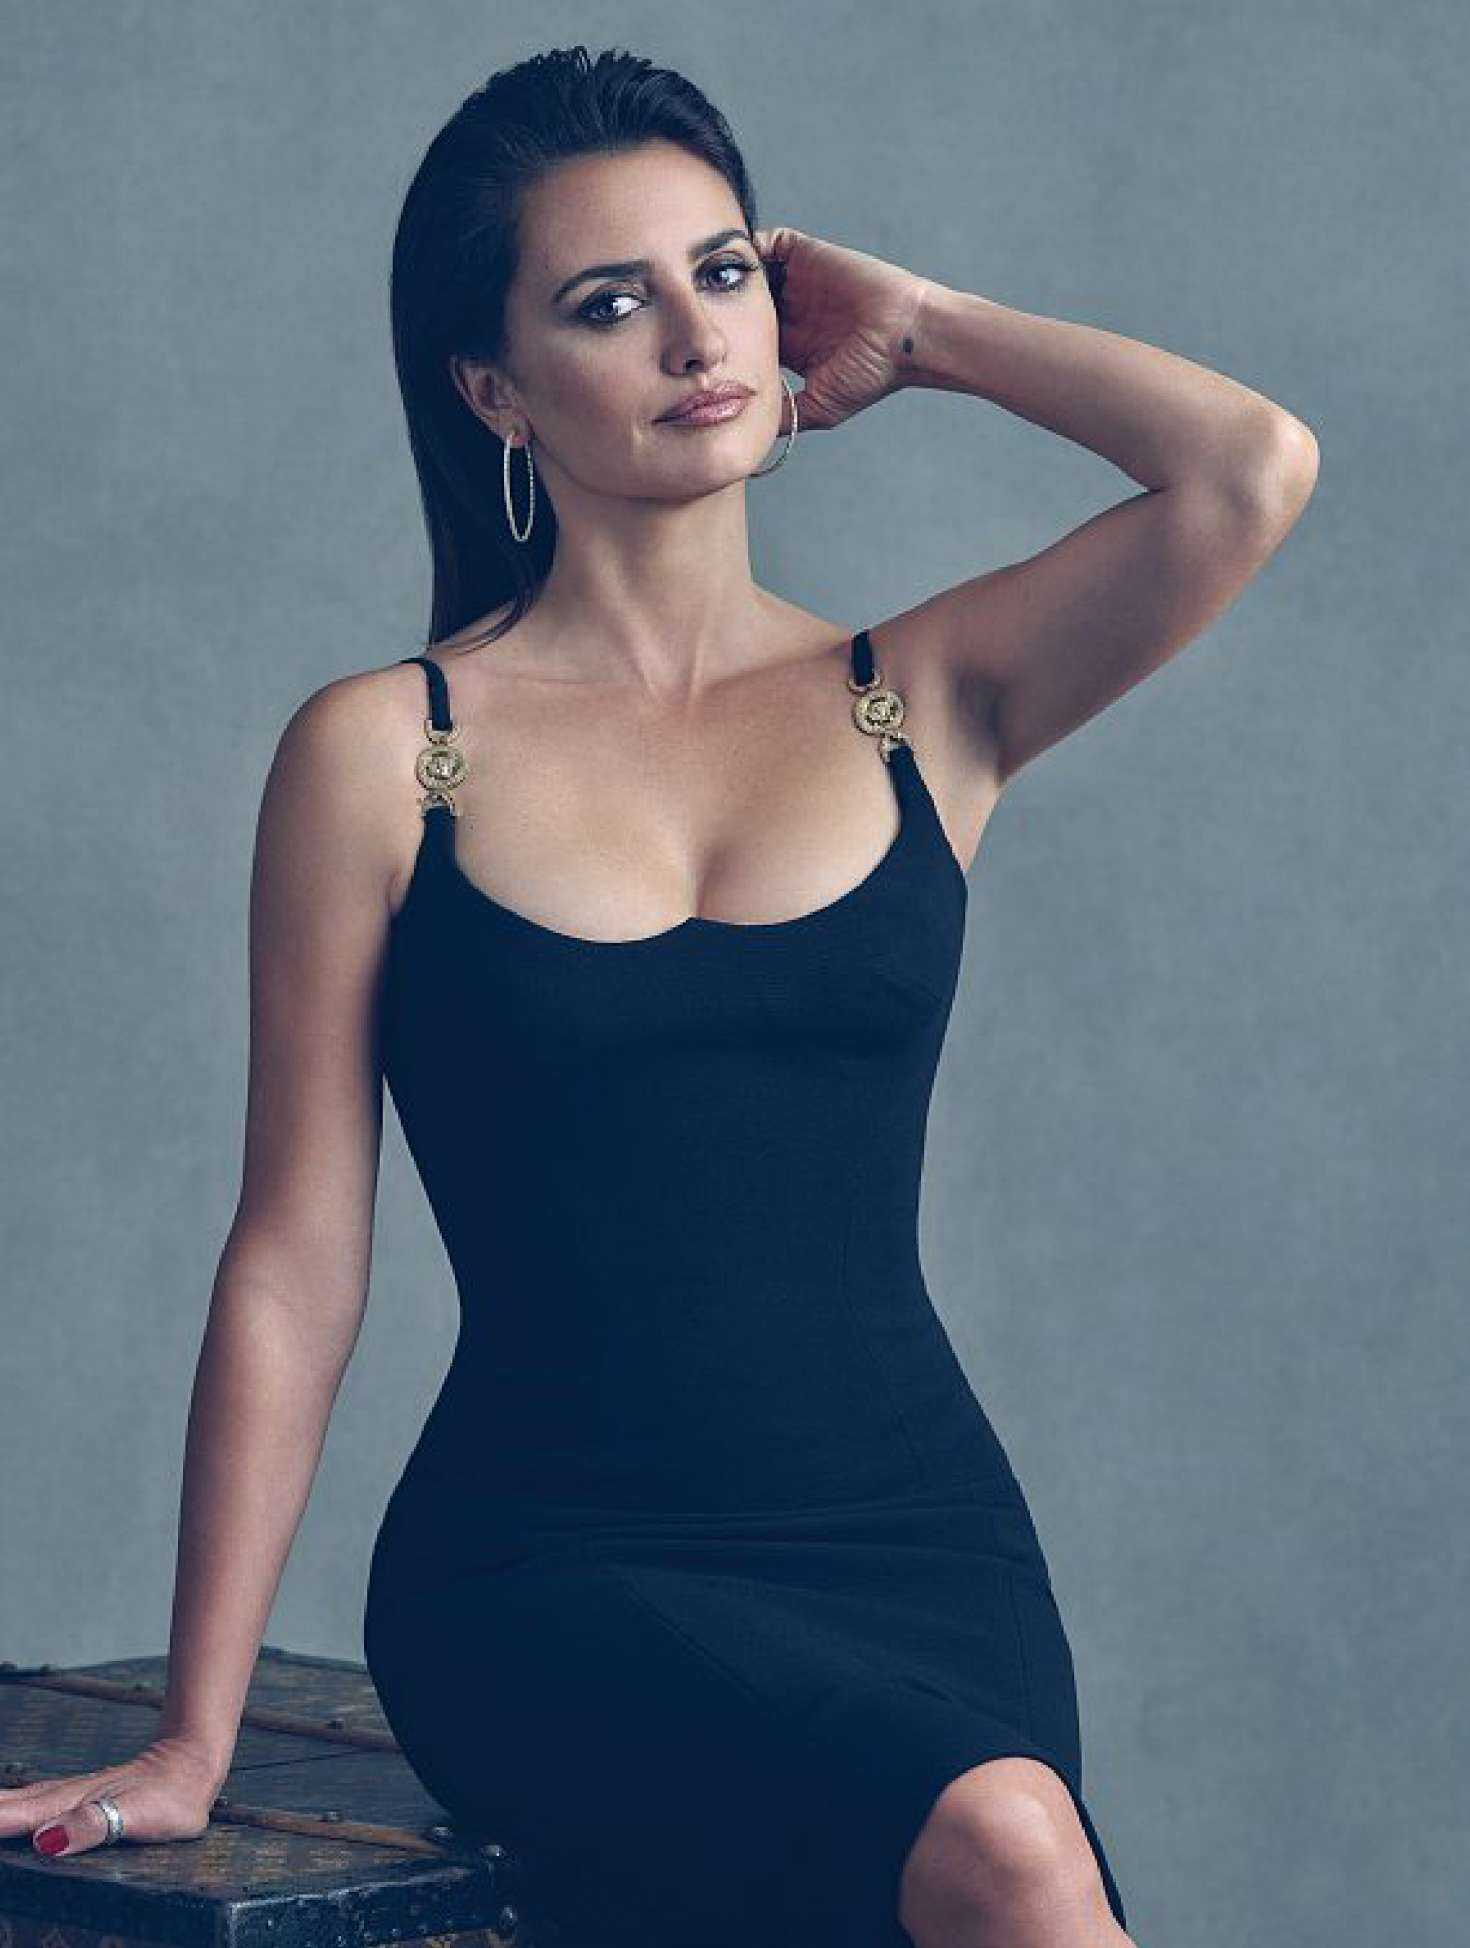 Full Hd Actress Wallpaper Penelope Cruz 2 Sawfirst Hot Celebrity Pictures